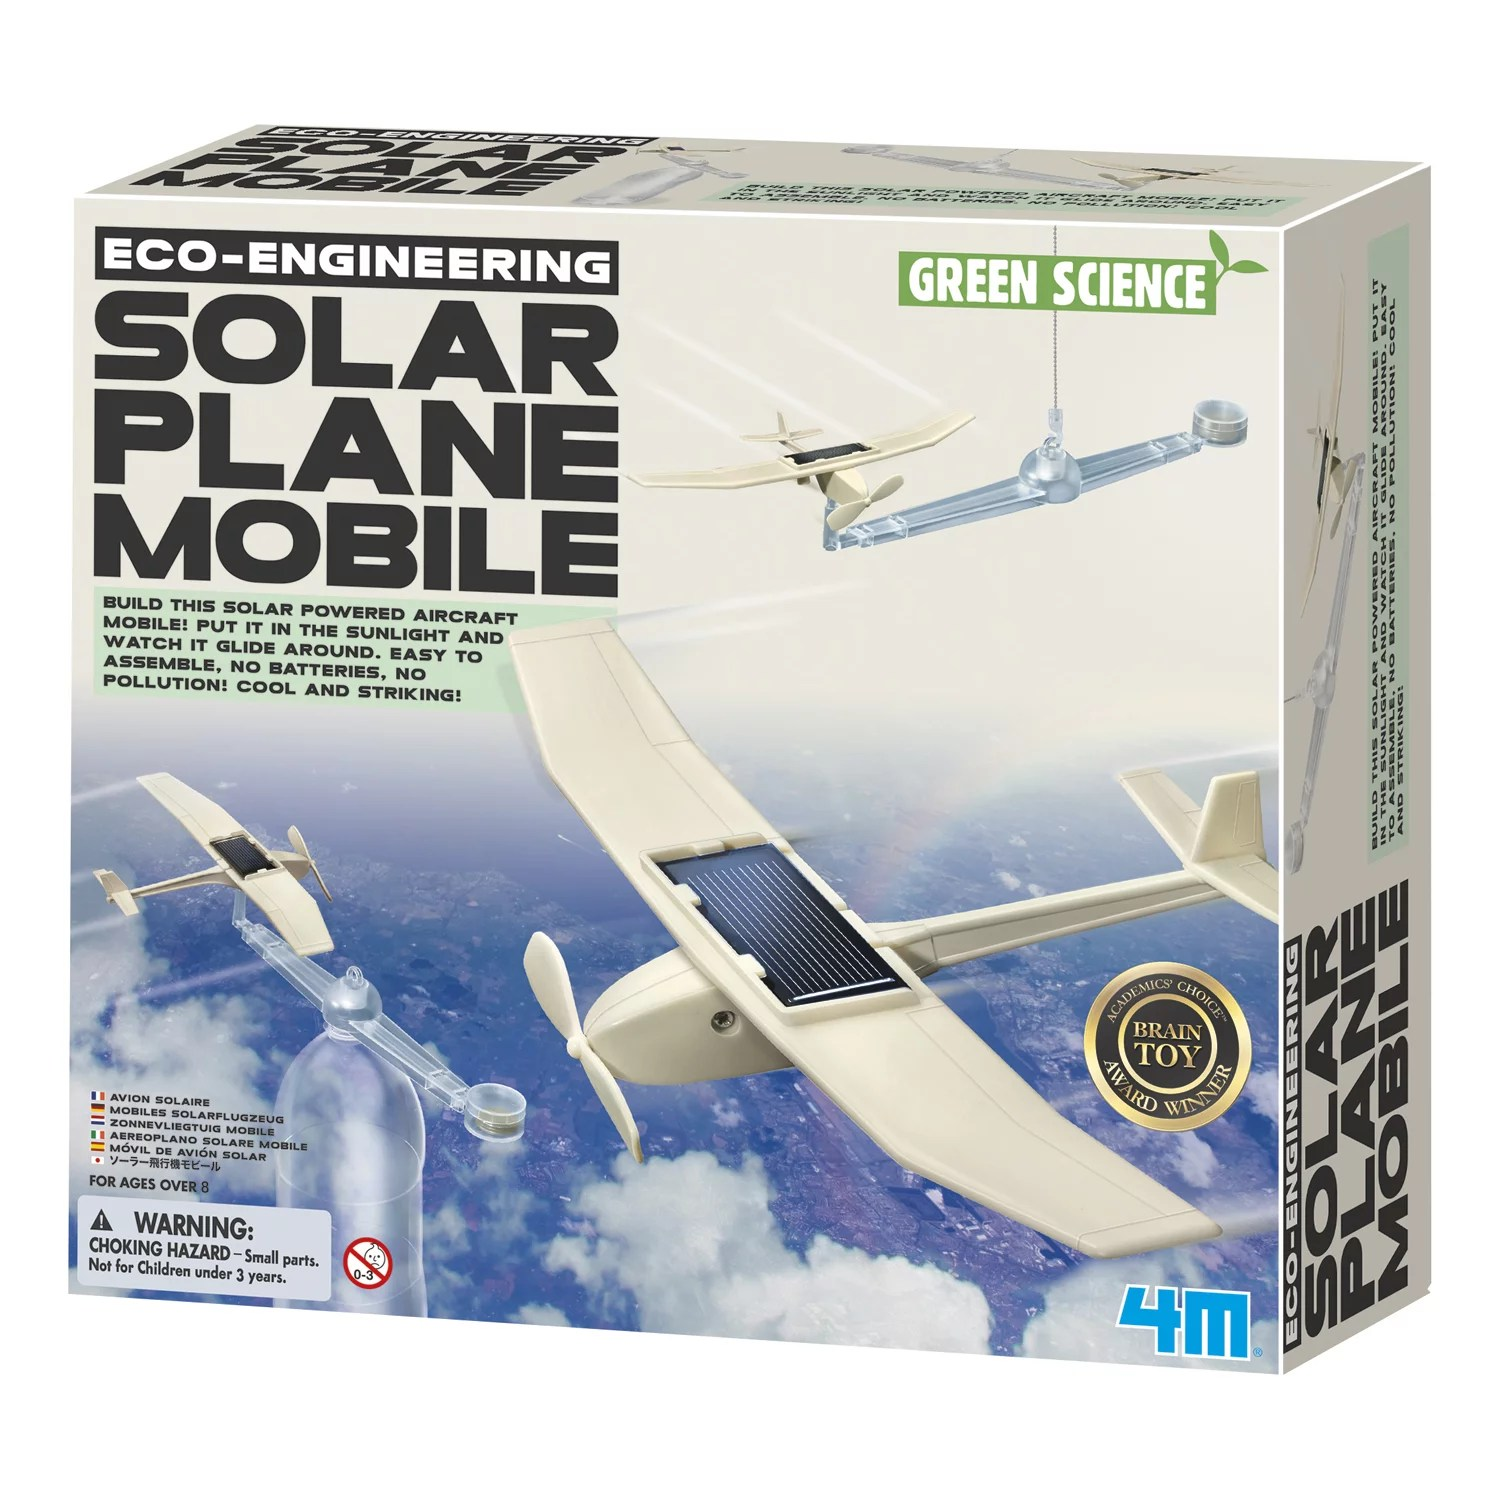 Solarplane Pool Willhaben 4m Green Science Eco Engineering Solar Plane Mobile Kit